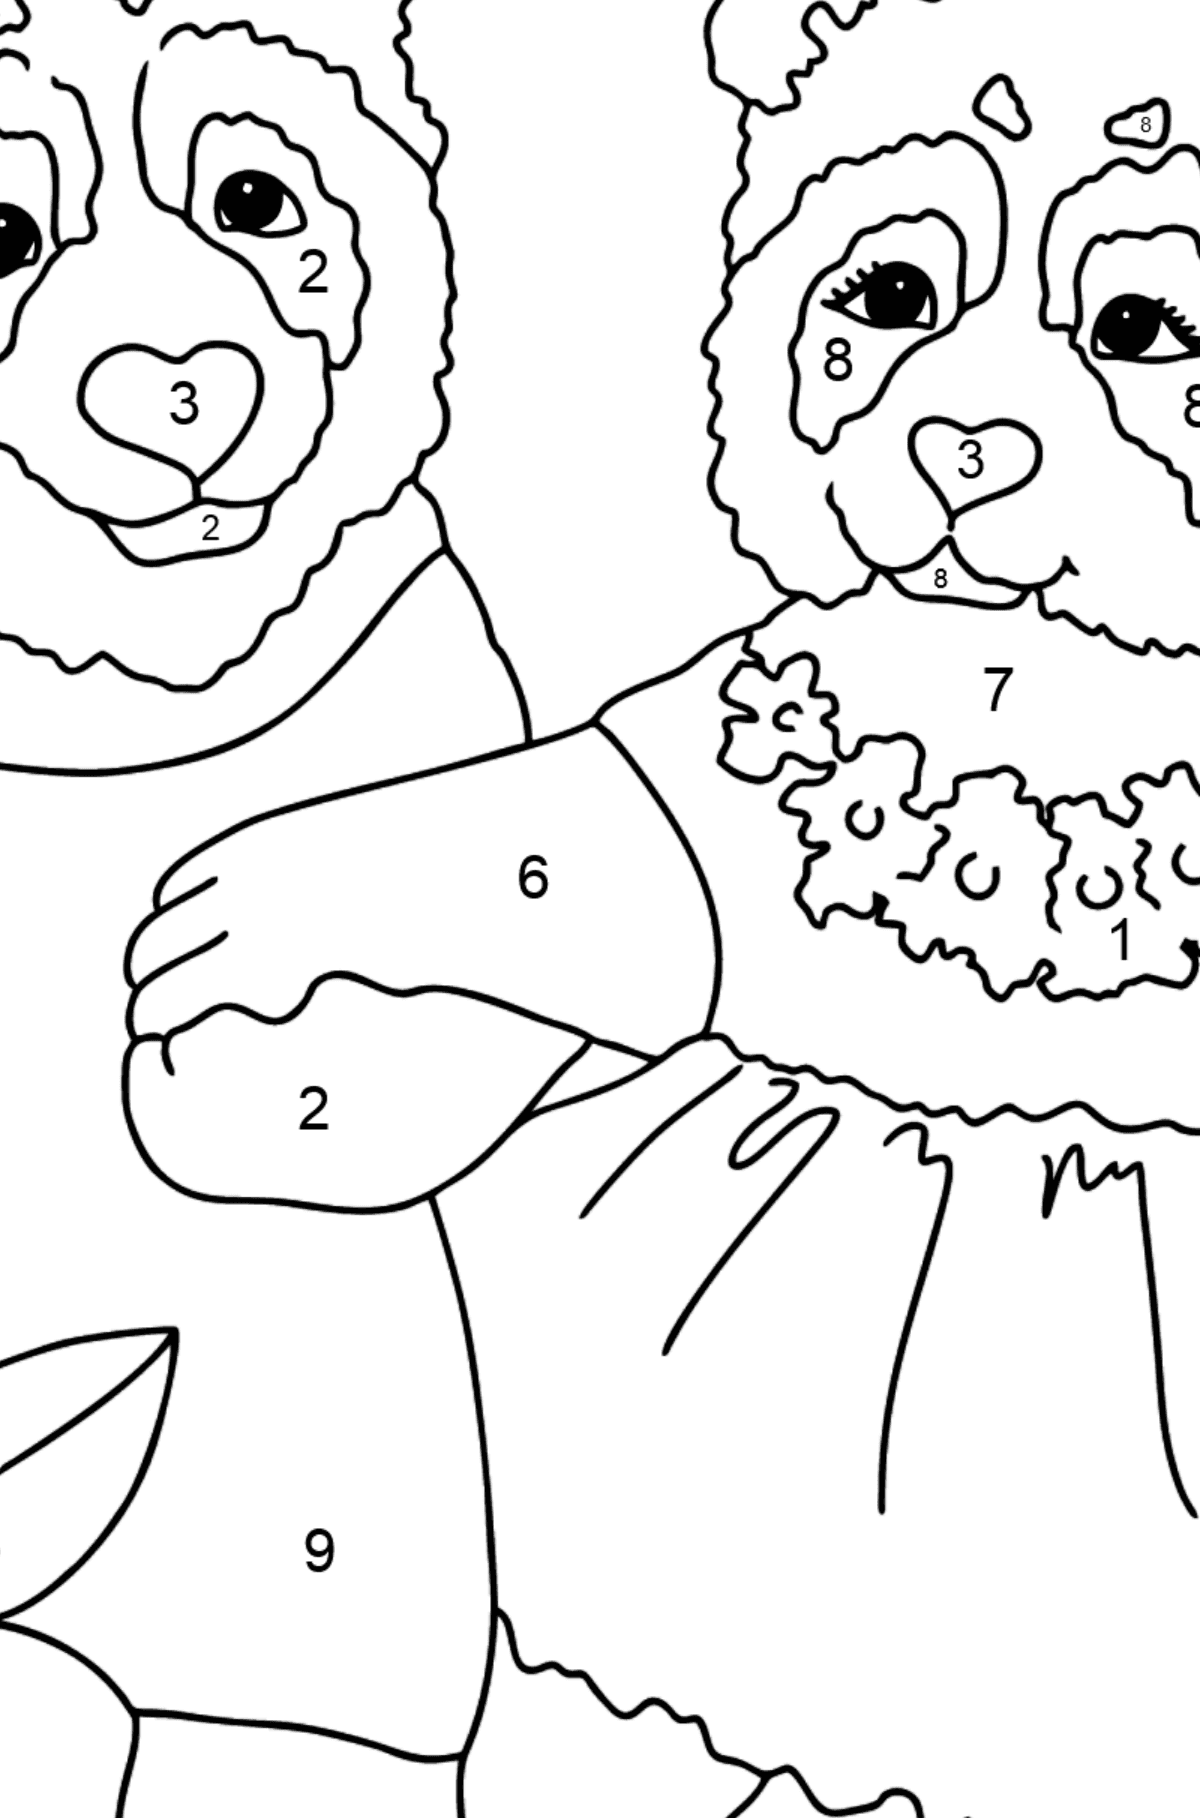 Coloring Page - Pandas are Taking a Walk - Coloring by Numbers for Kids